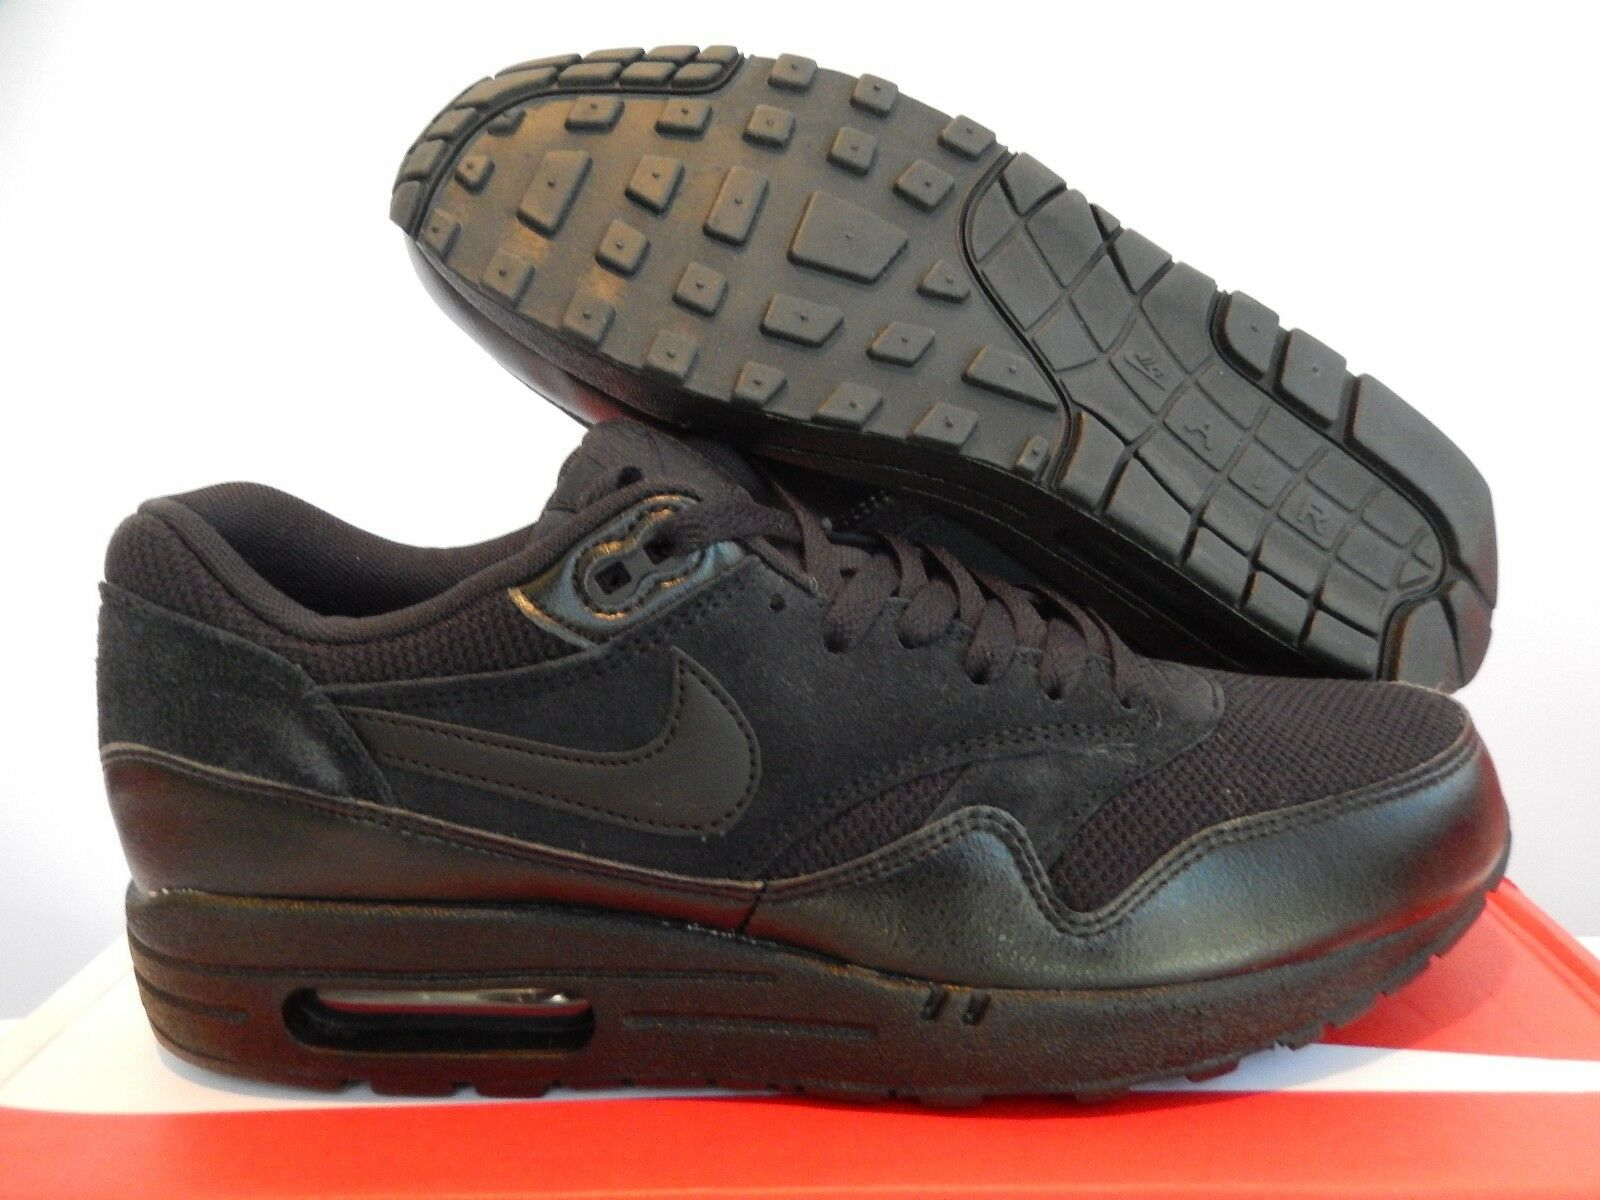 NIKE AIR MAX 1 ESSENTIAL ALL nero SZ 10 [537383-020] [537383-020] [537383-020] 536d28